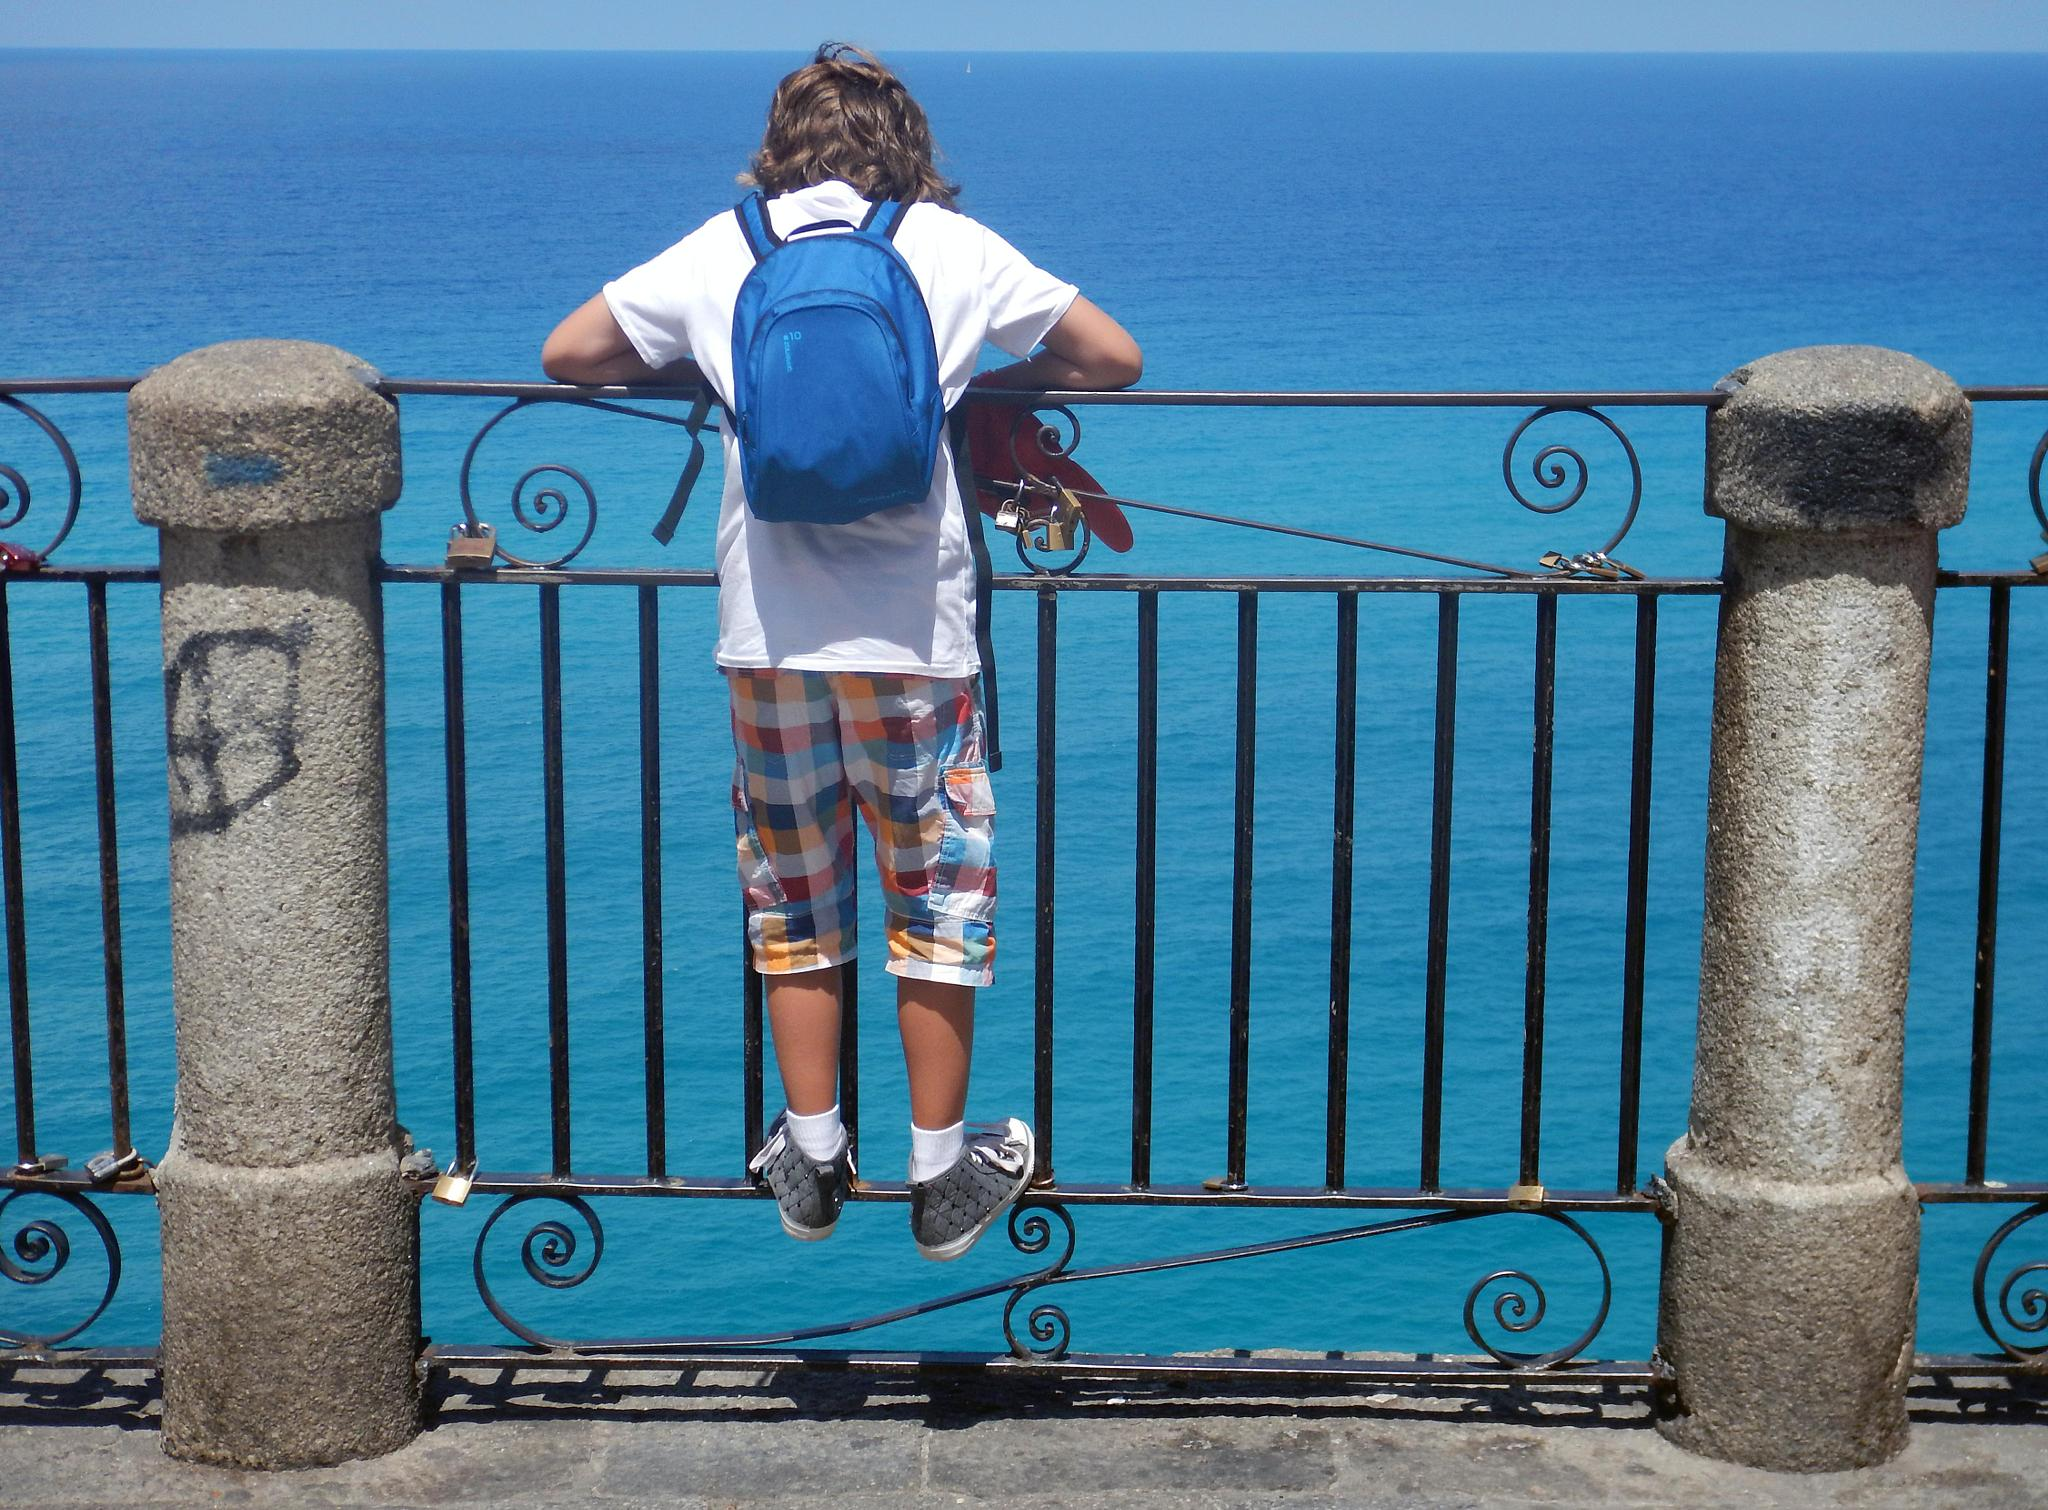 the little tourist in Tropea by Roberto Russo